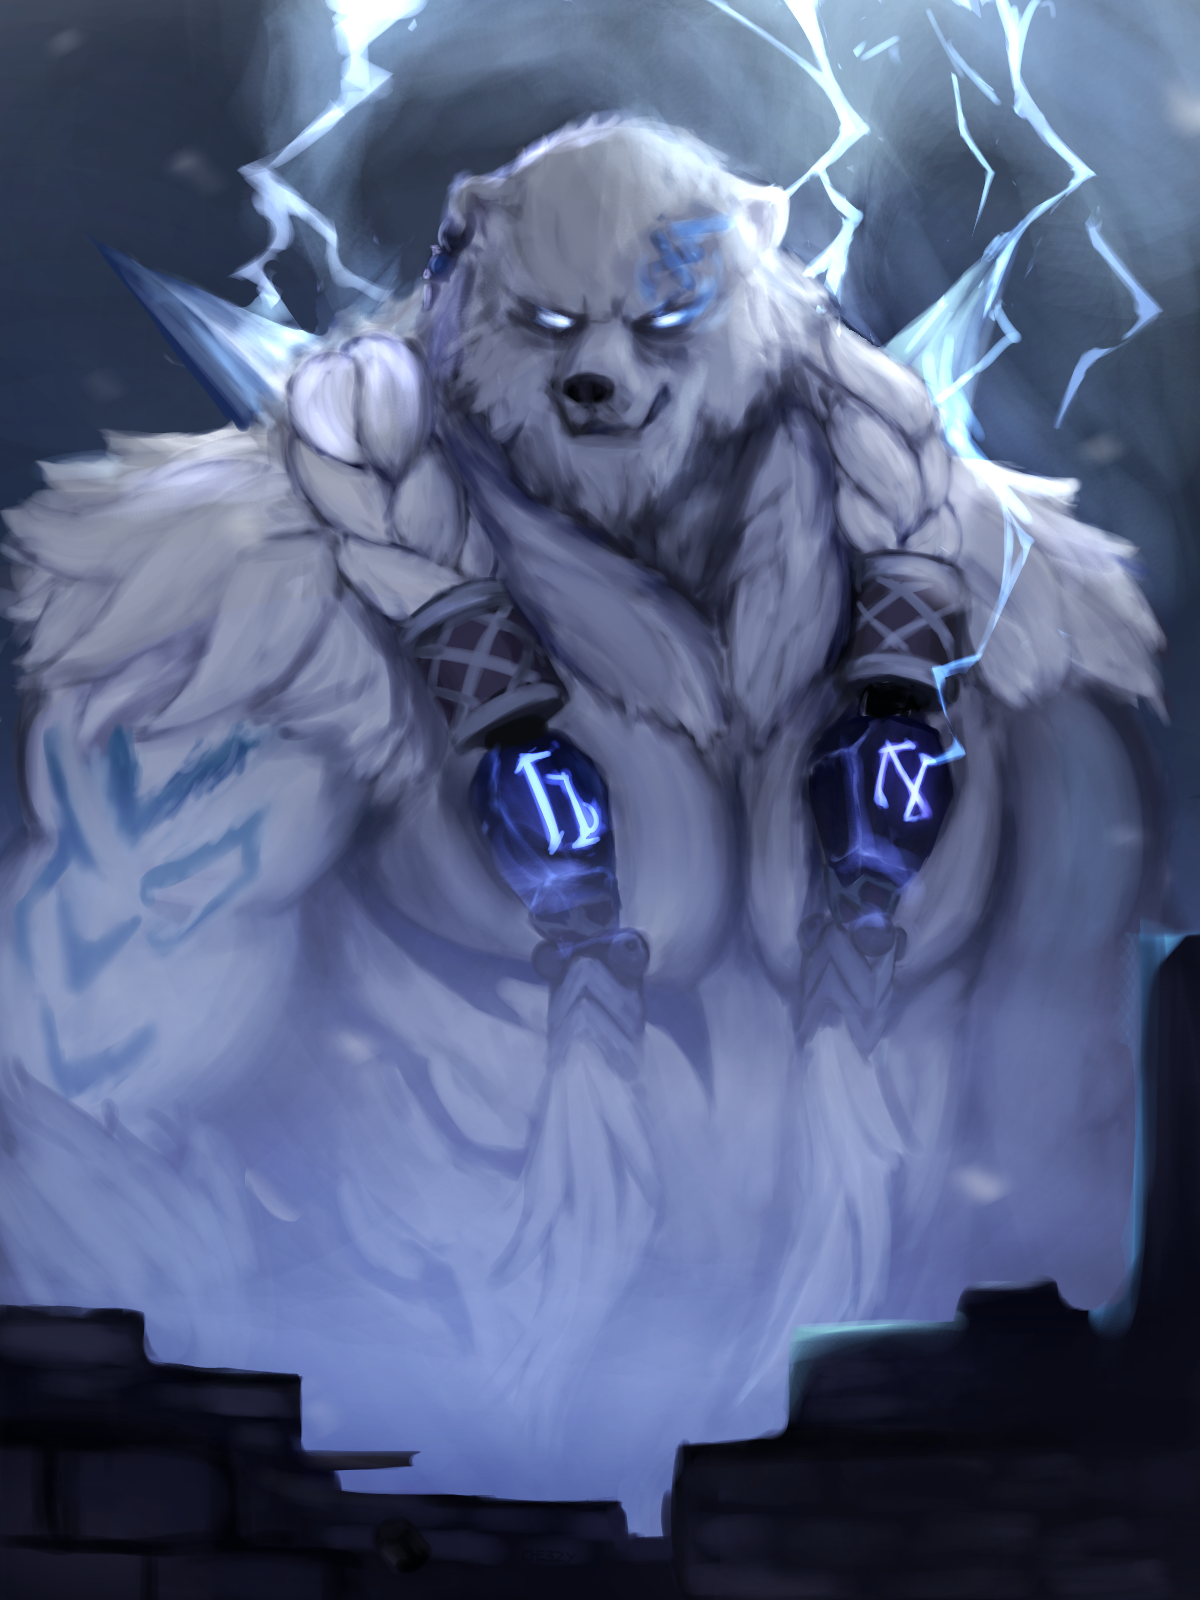 Fanart Volibear The Relentless Storm By Che3zy On Deviantart In 2020 Fantasy Creatures Art Champions League Of Legends League Of Legends Characters